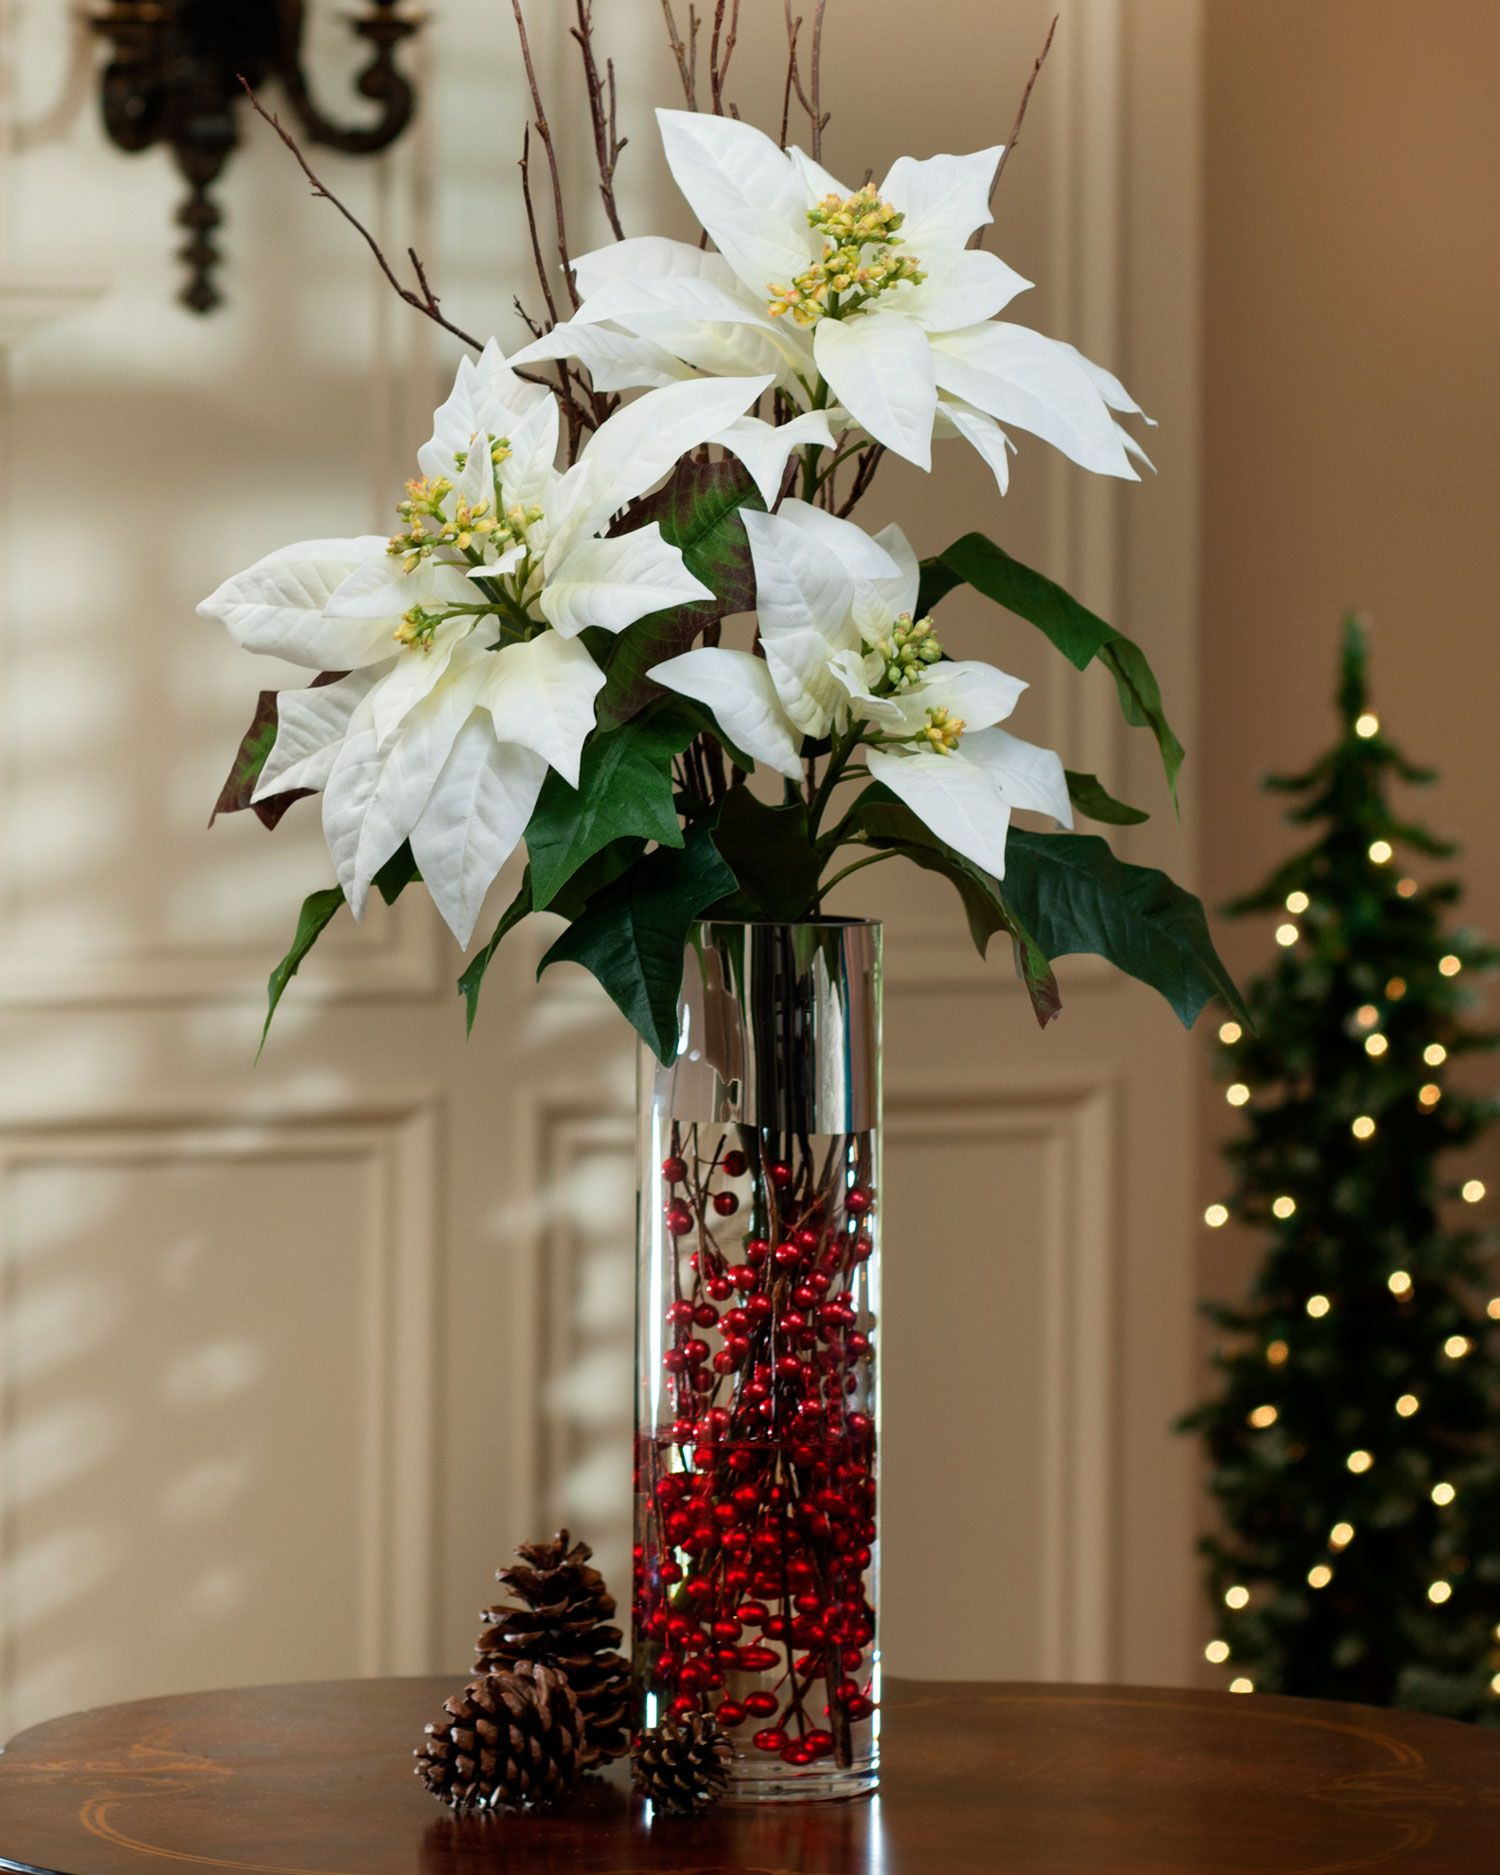 Tall Poinsettia Birch Berries Silk Arrangement White Christmas Flower Arrangements Christmas Floral Arrangements Christmas Decorations